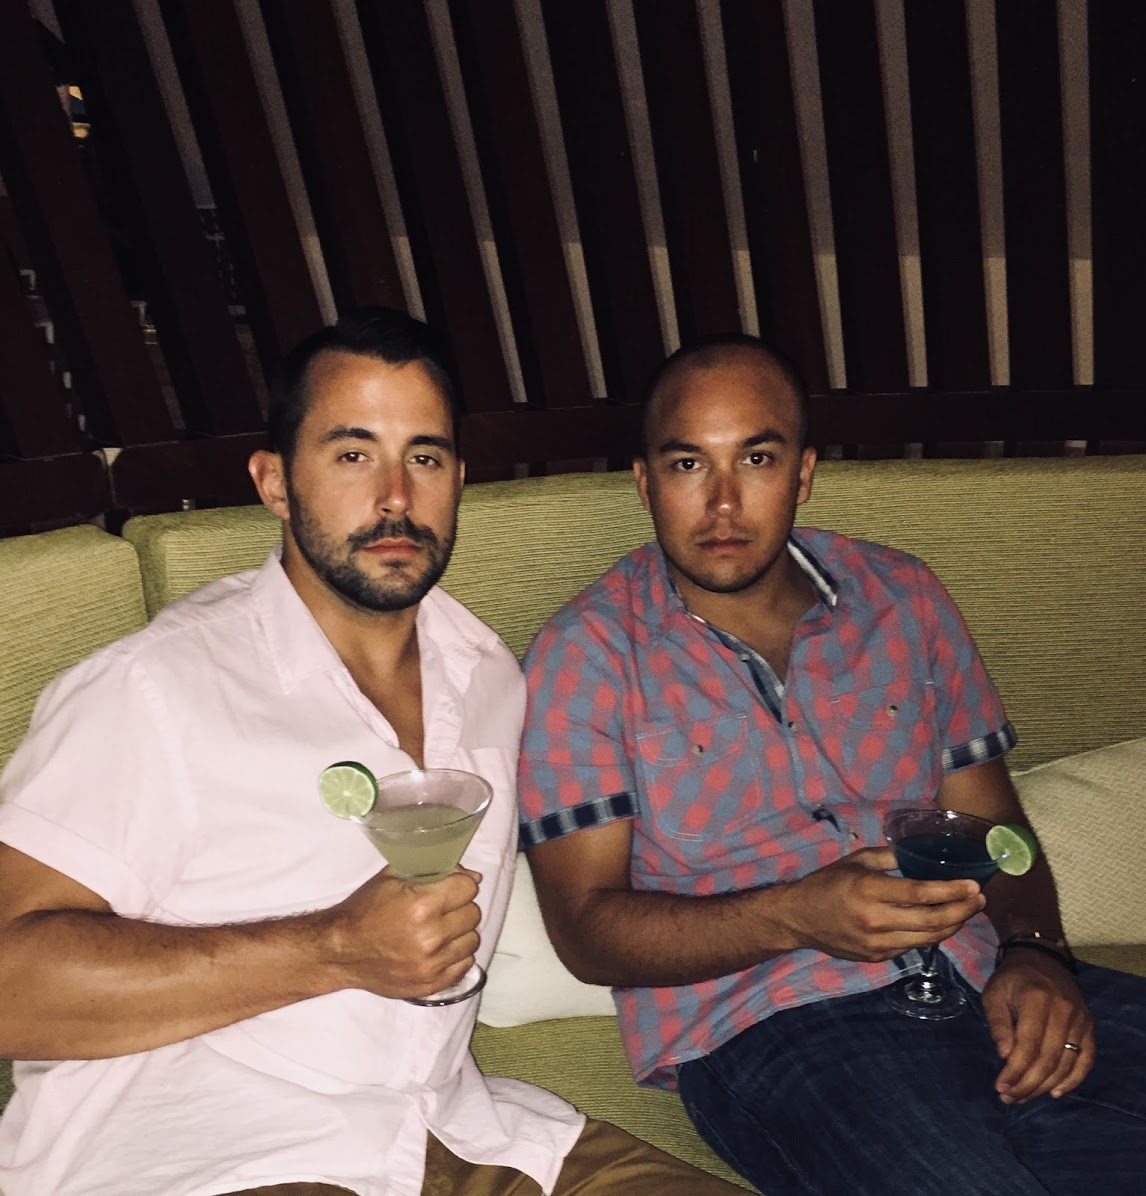 Our gentlemen with martinis in the Dominican Republic